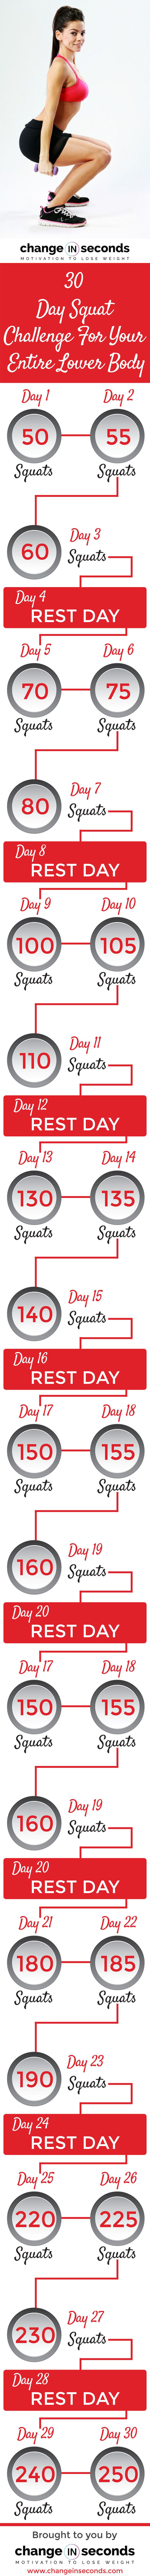 Fitness Motivation : 30 Day Squat Workout For Your Entire